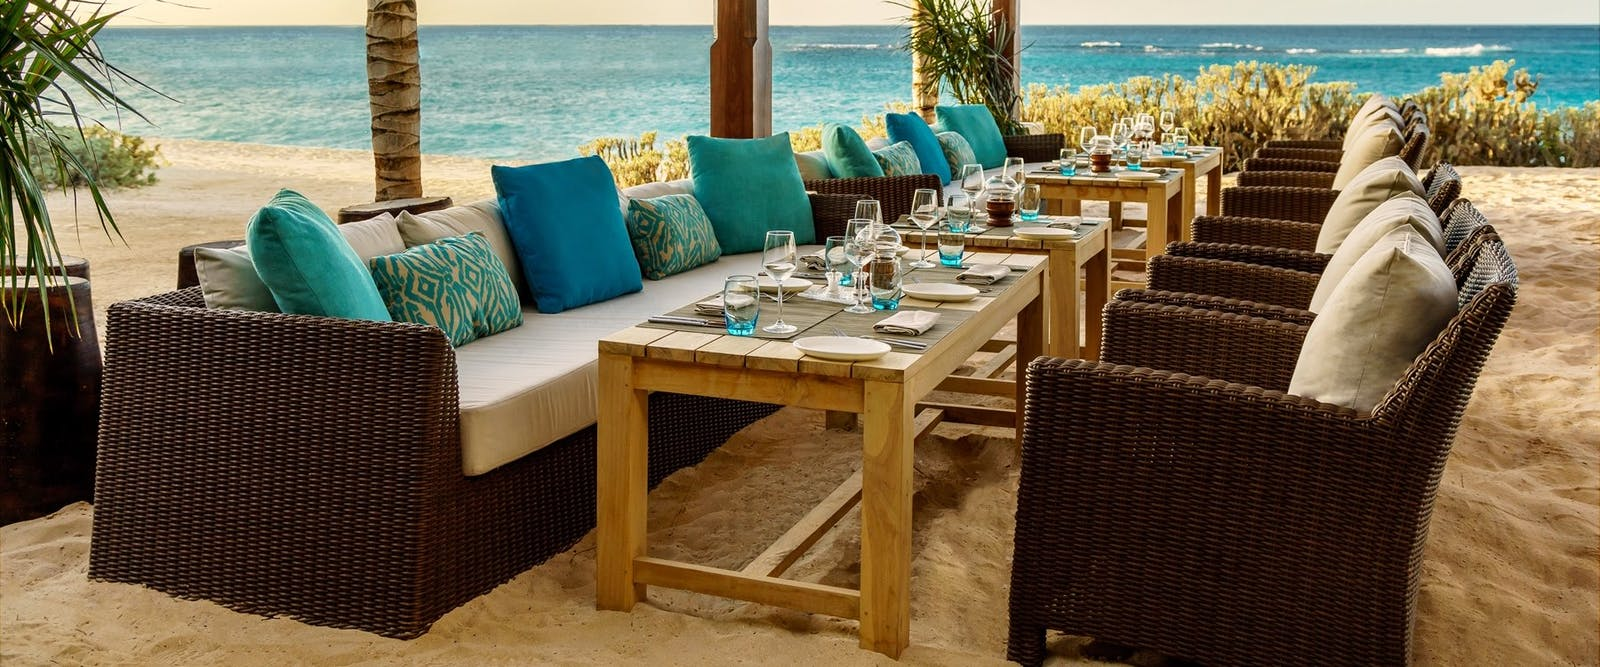 Beachfront Restaurant at Zemi Beach House, Anguilla